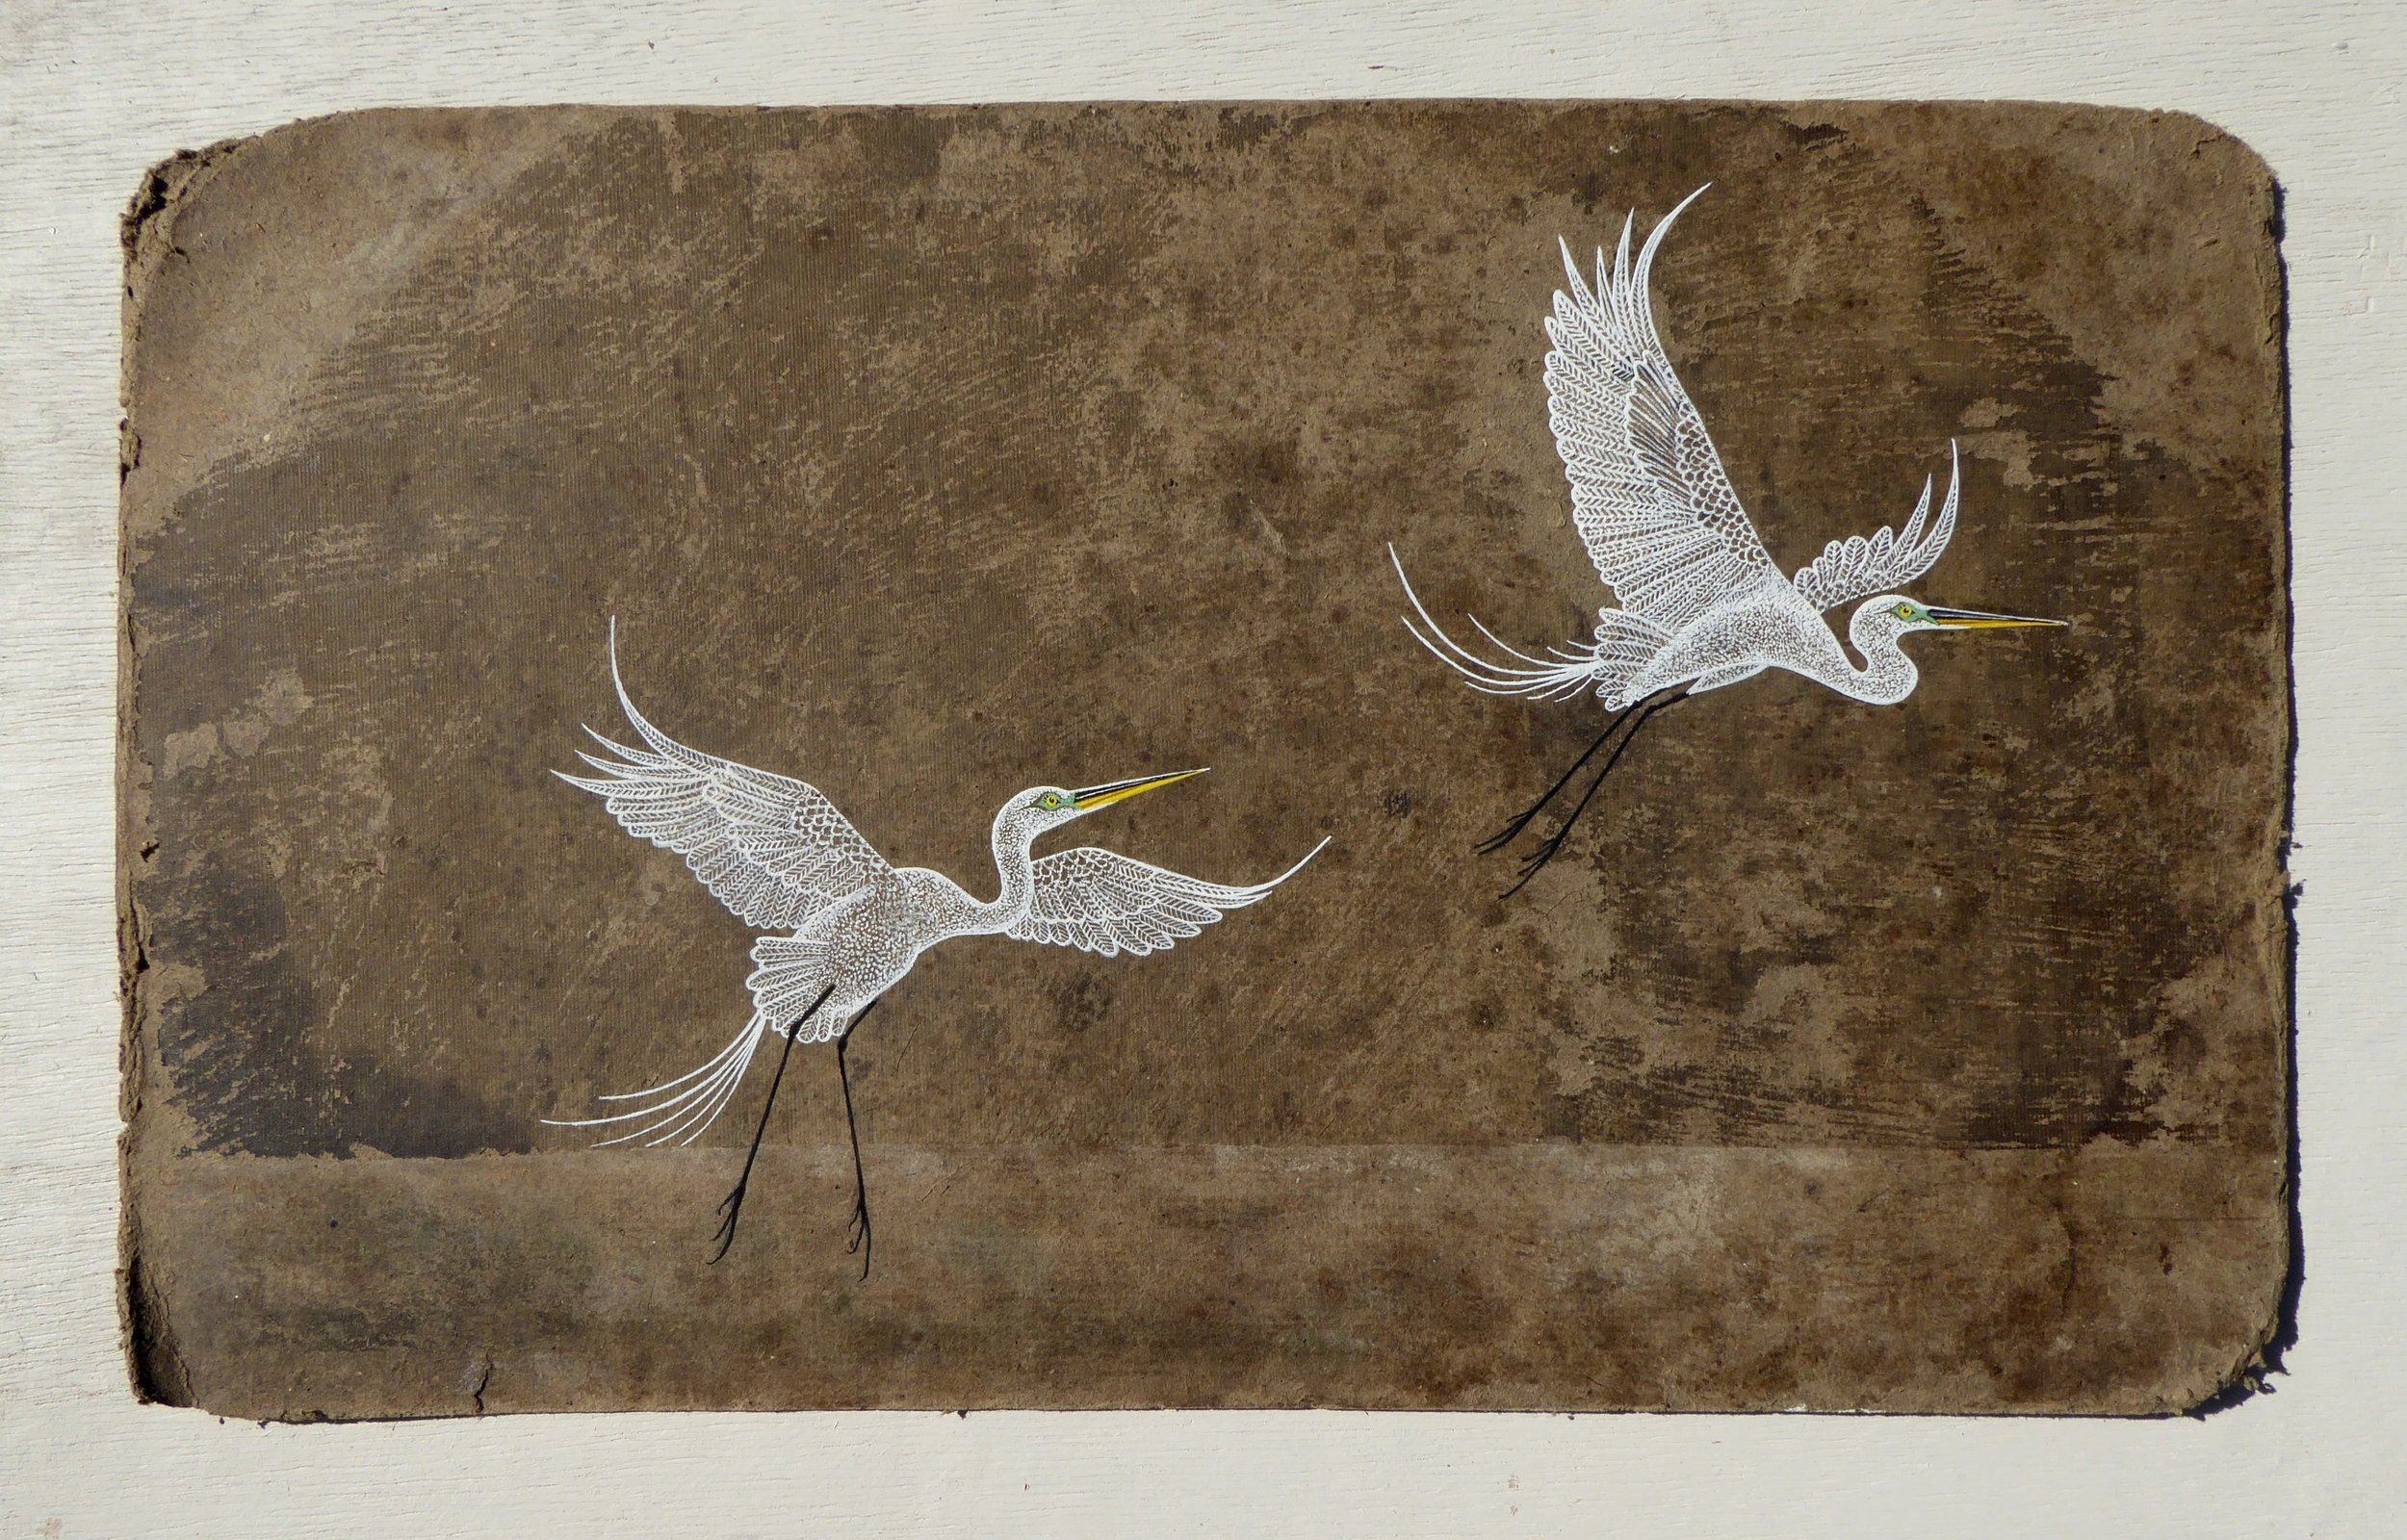 Egrets over the Water 48 x 28 cm